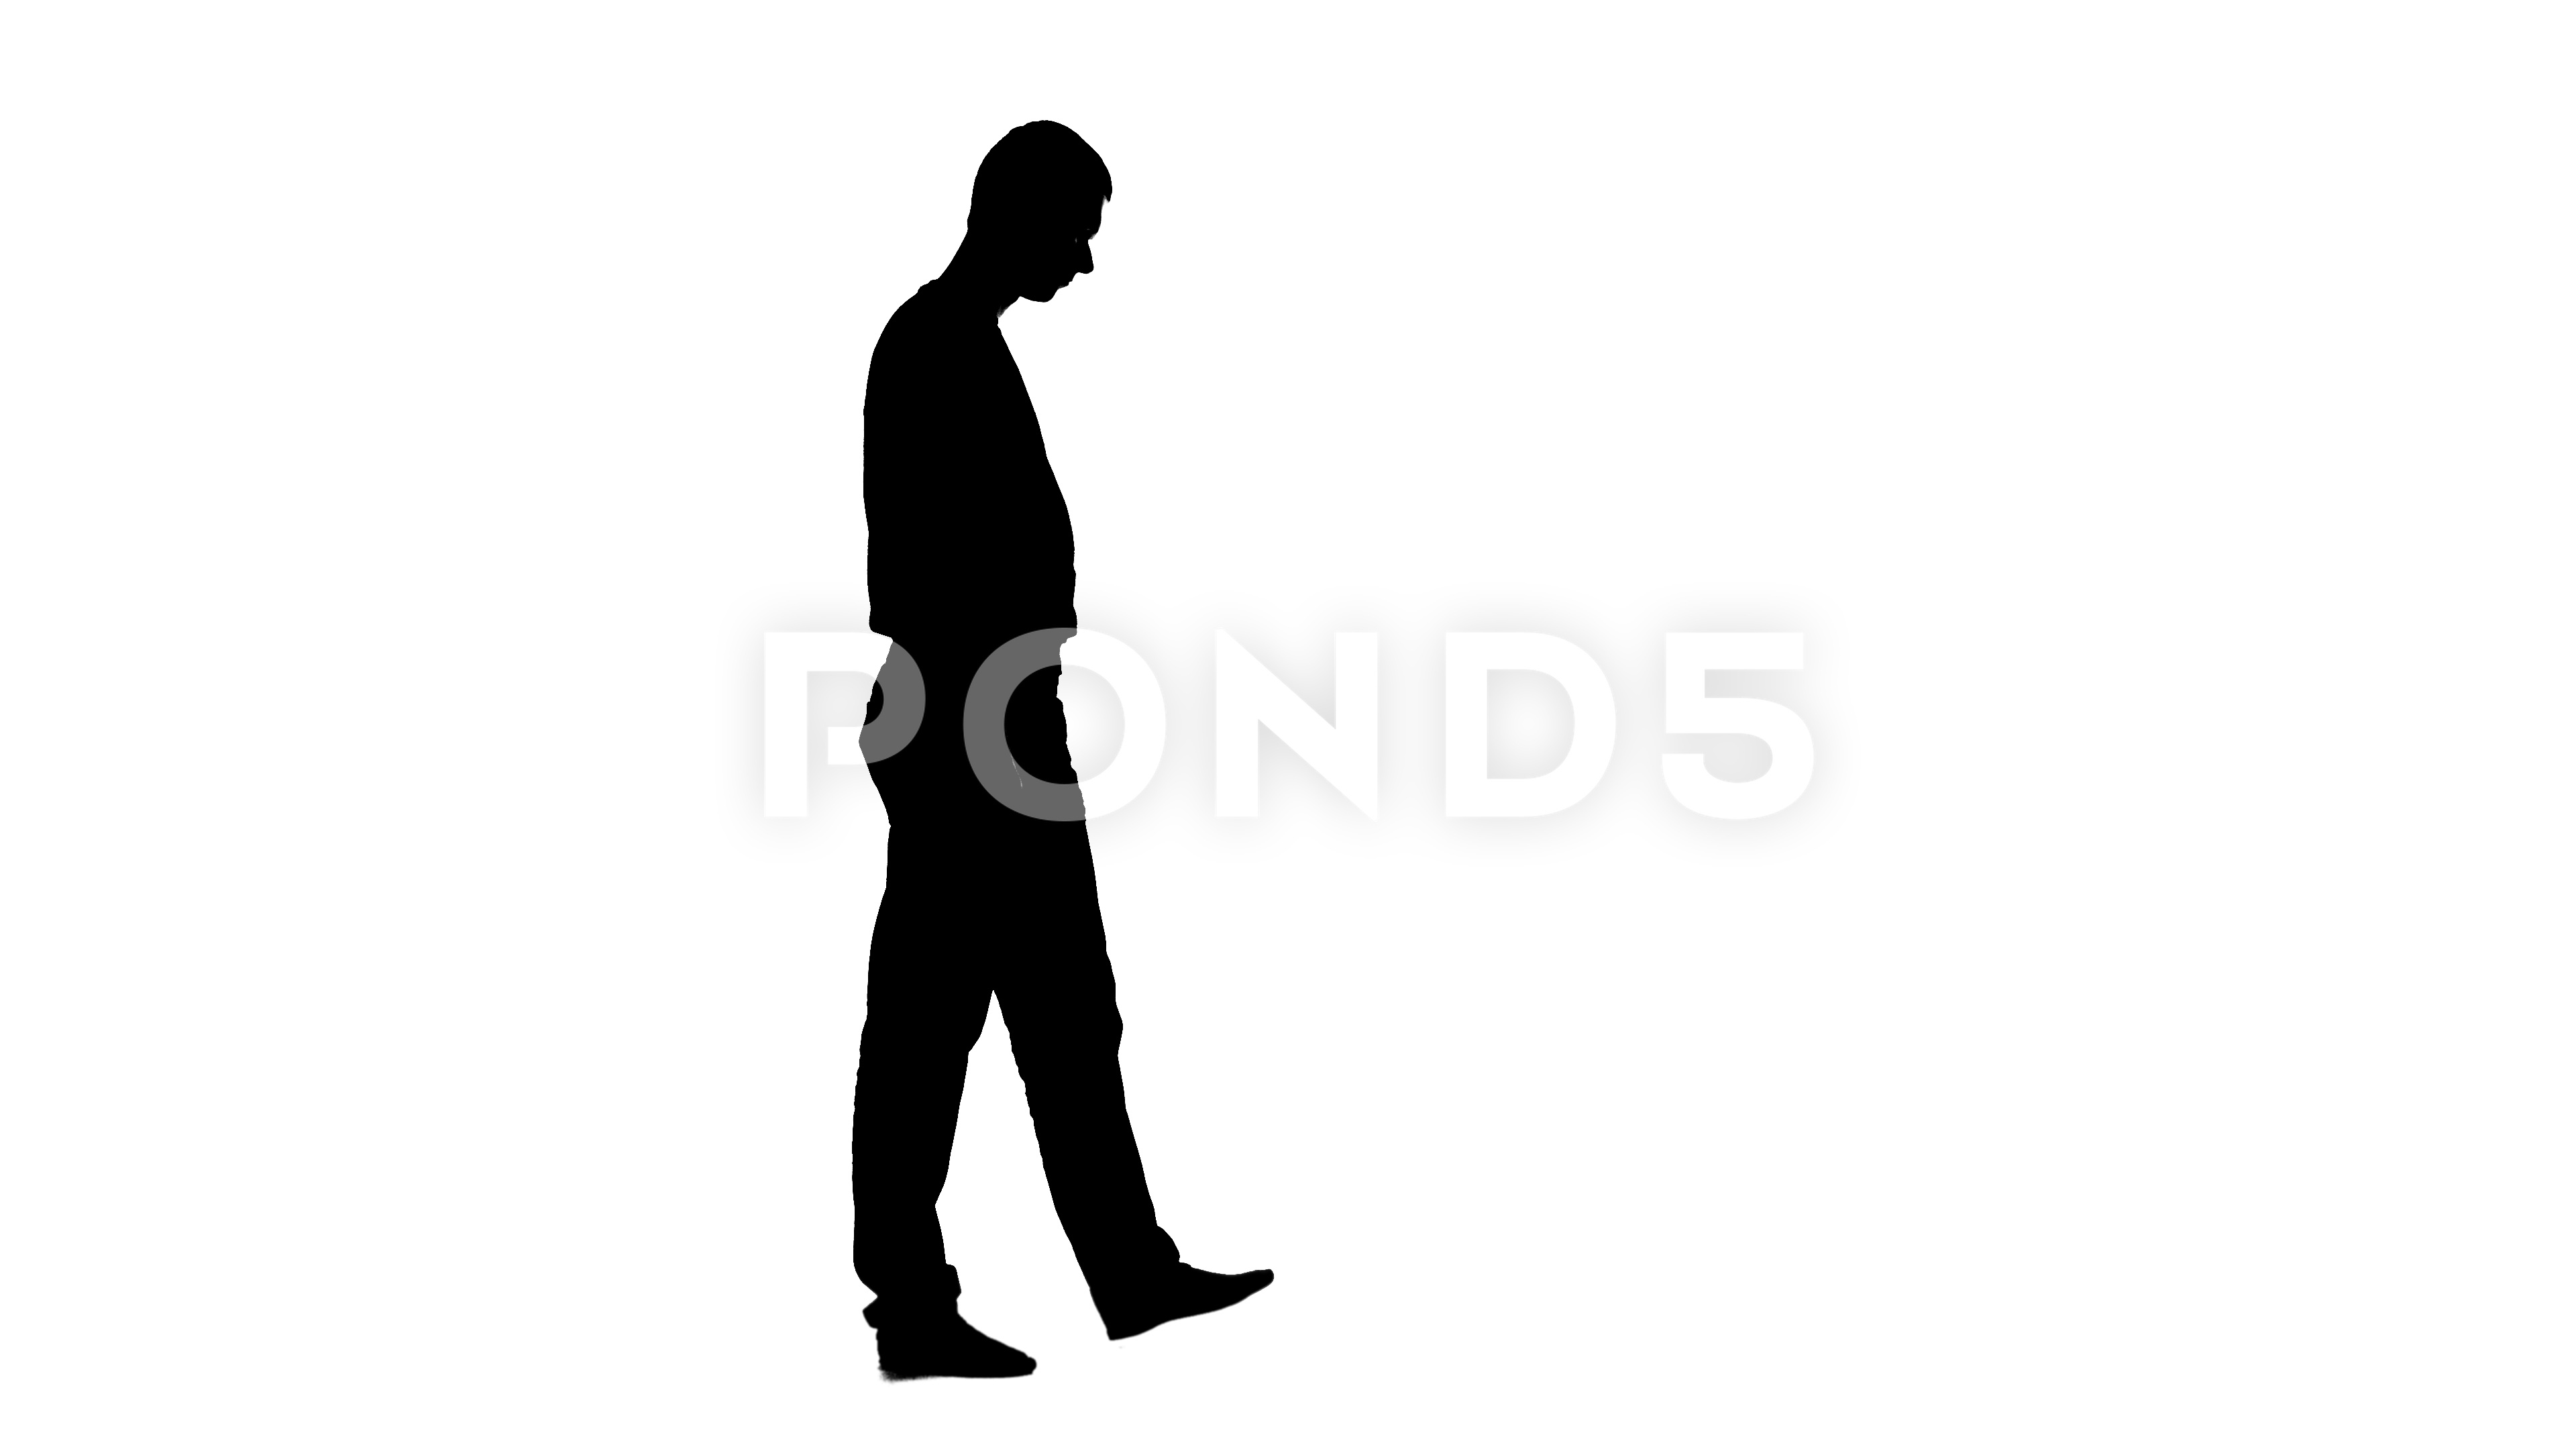 3840x2160 Video Man Walks Around The Room, He Is Tired Of Work. Silhouette